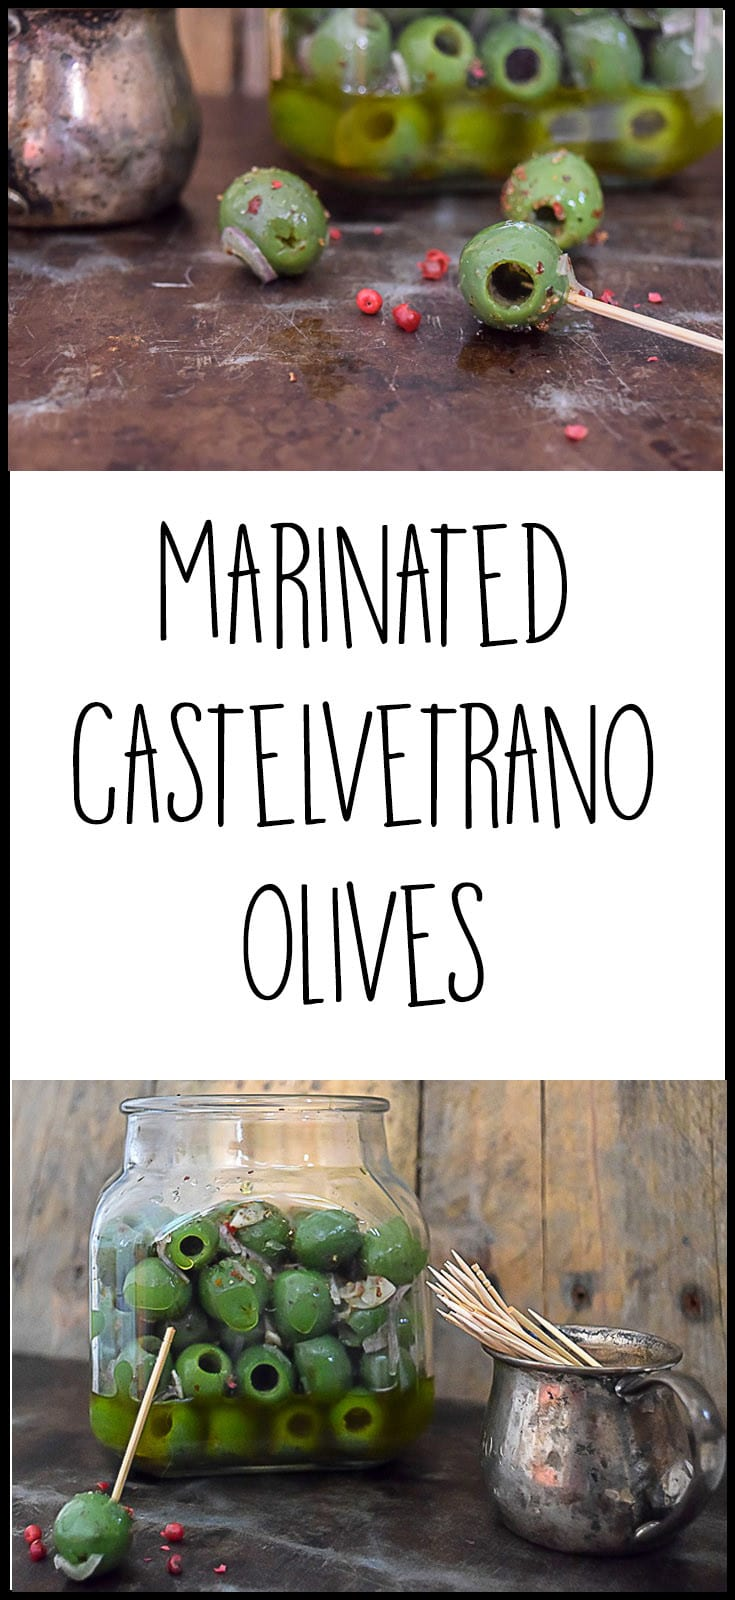 A recipe for Marinated Castelvetrano olives with shallots, garlic and pink peppercorn. Perfect for snacking and appetizers.